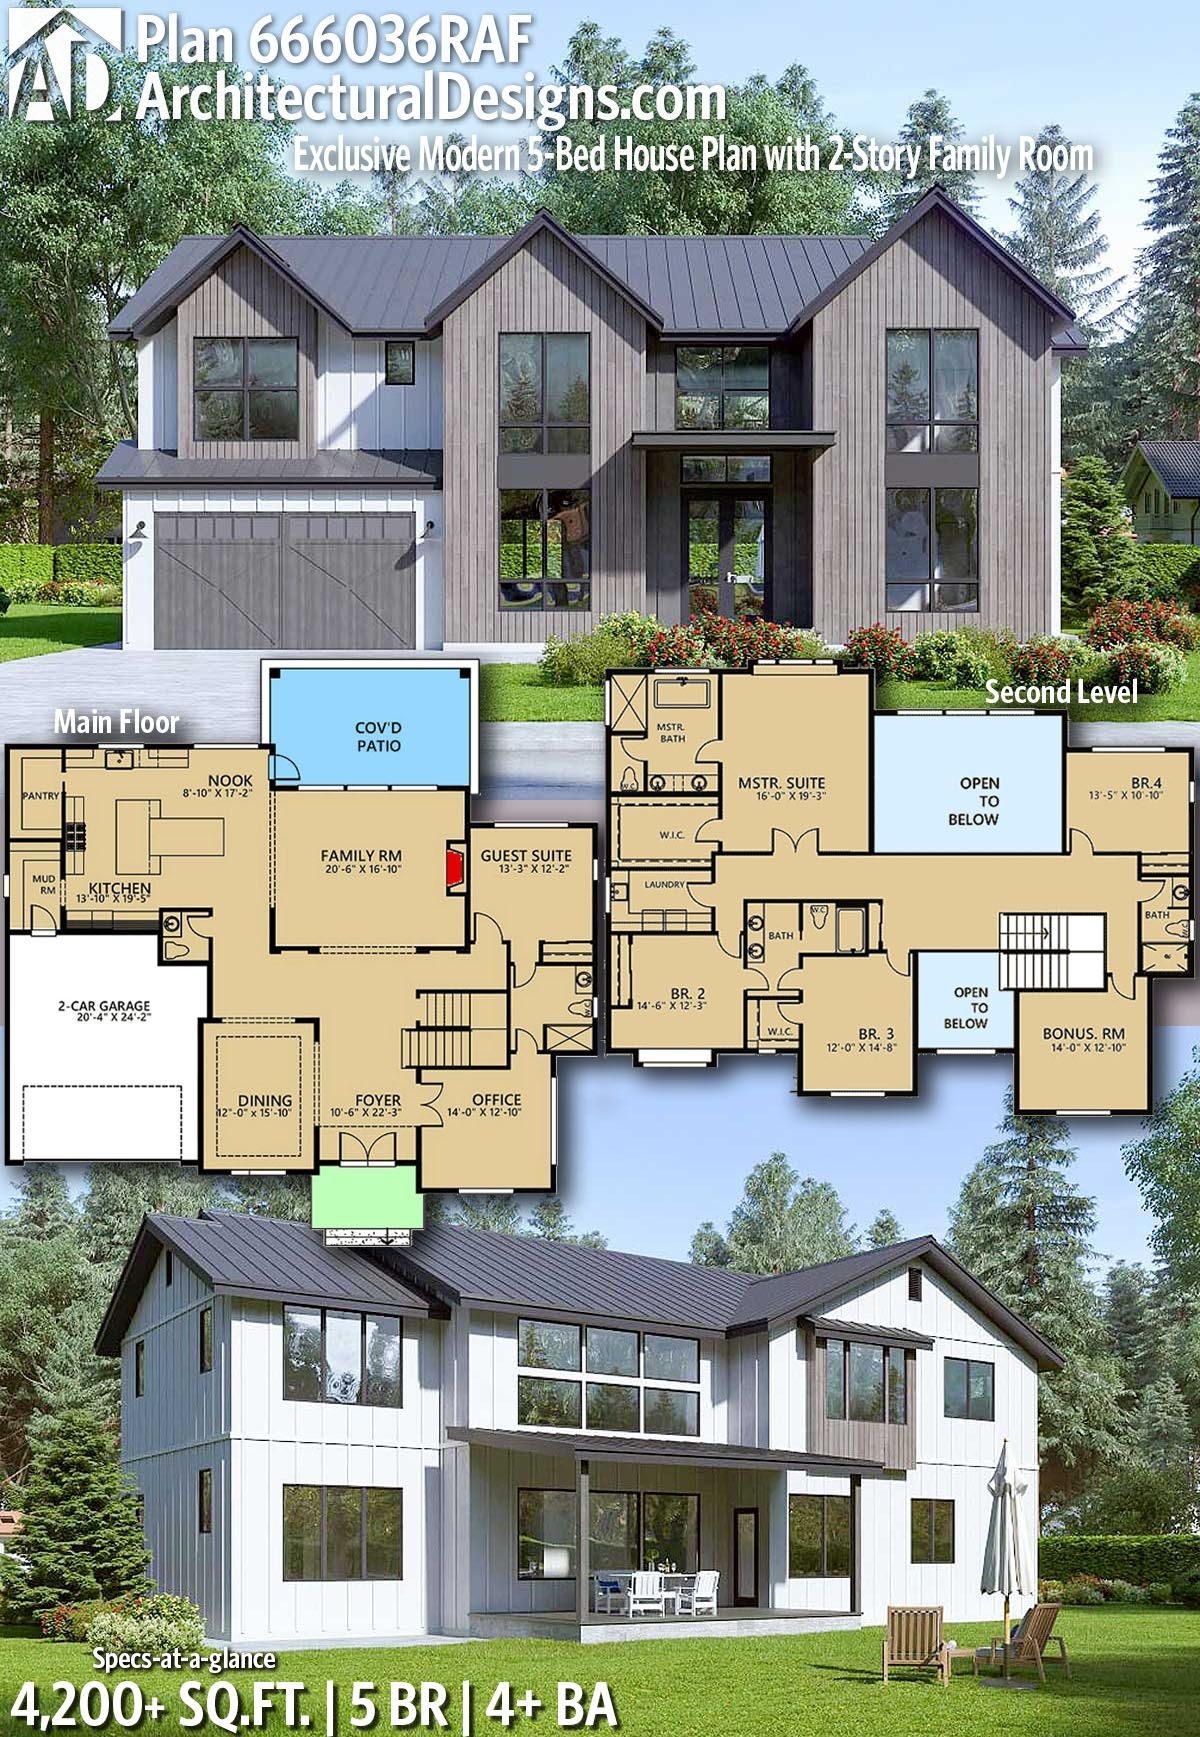 Plan 666036raf Modern 5 Bed House Plan With 2 Story Foyer And Family Room House Plans Modern House Plans Sims House Plans